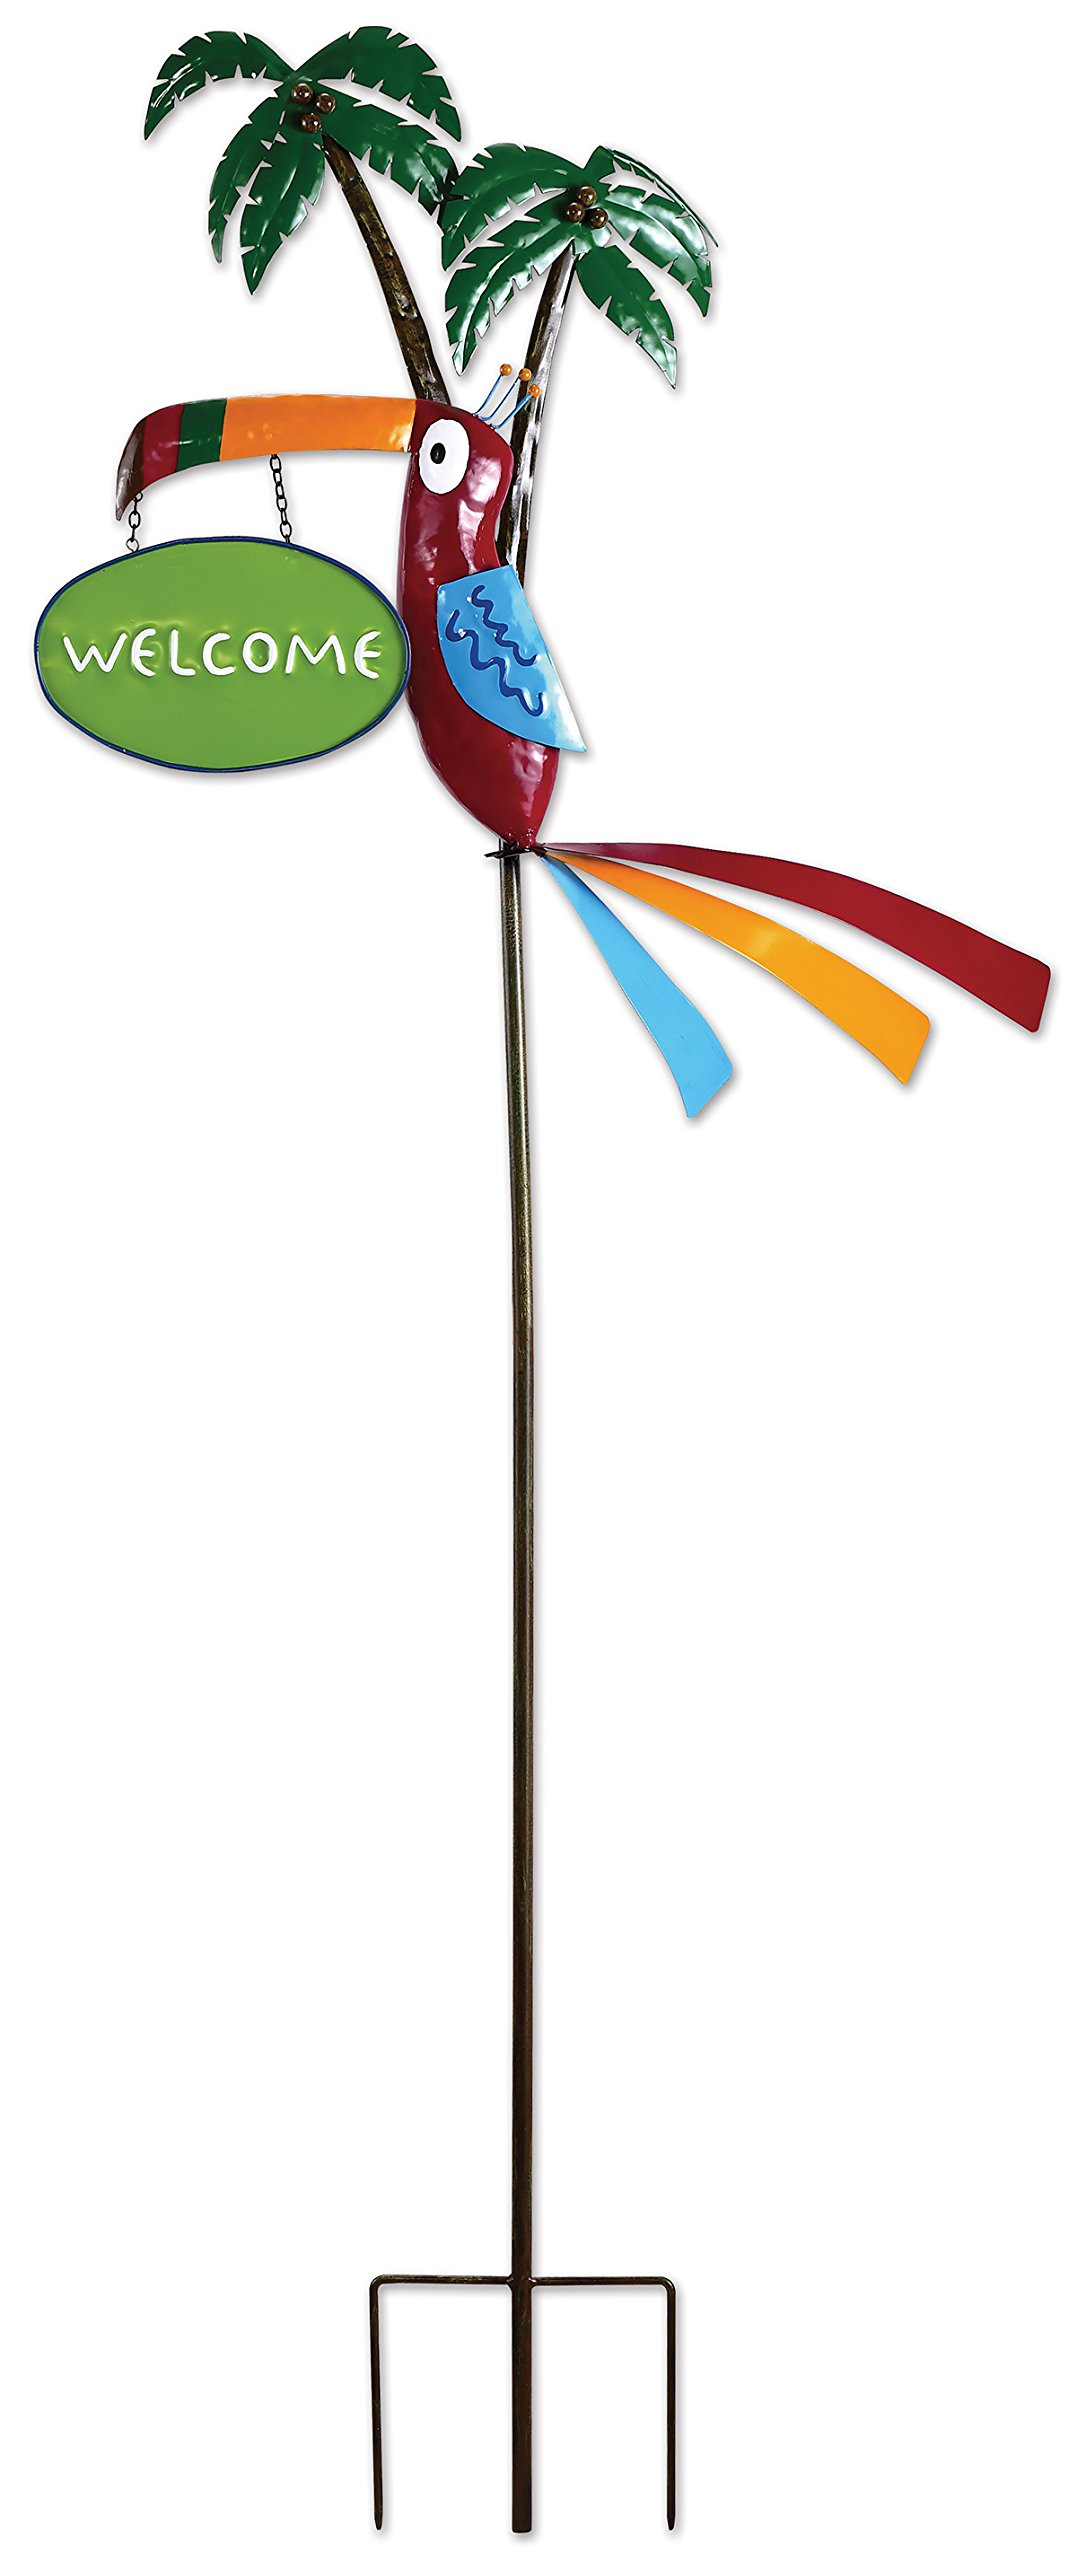 Sunset Vista Designs MF098 Tropical Toucan Garden Stake with Welcome Sign